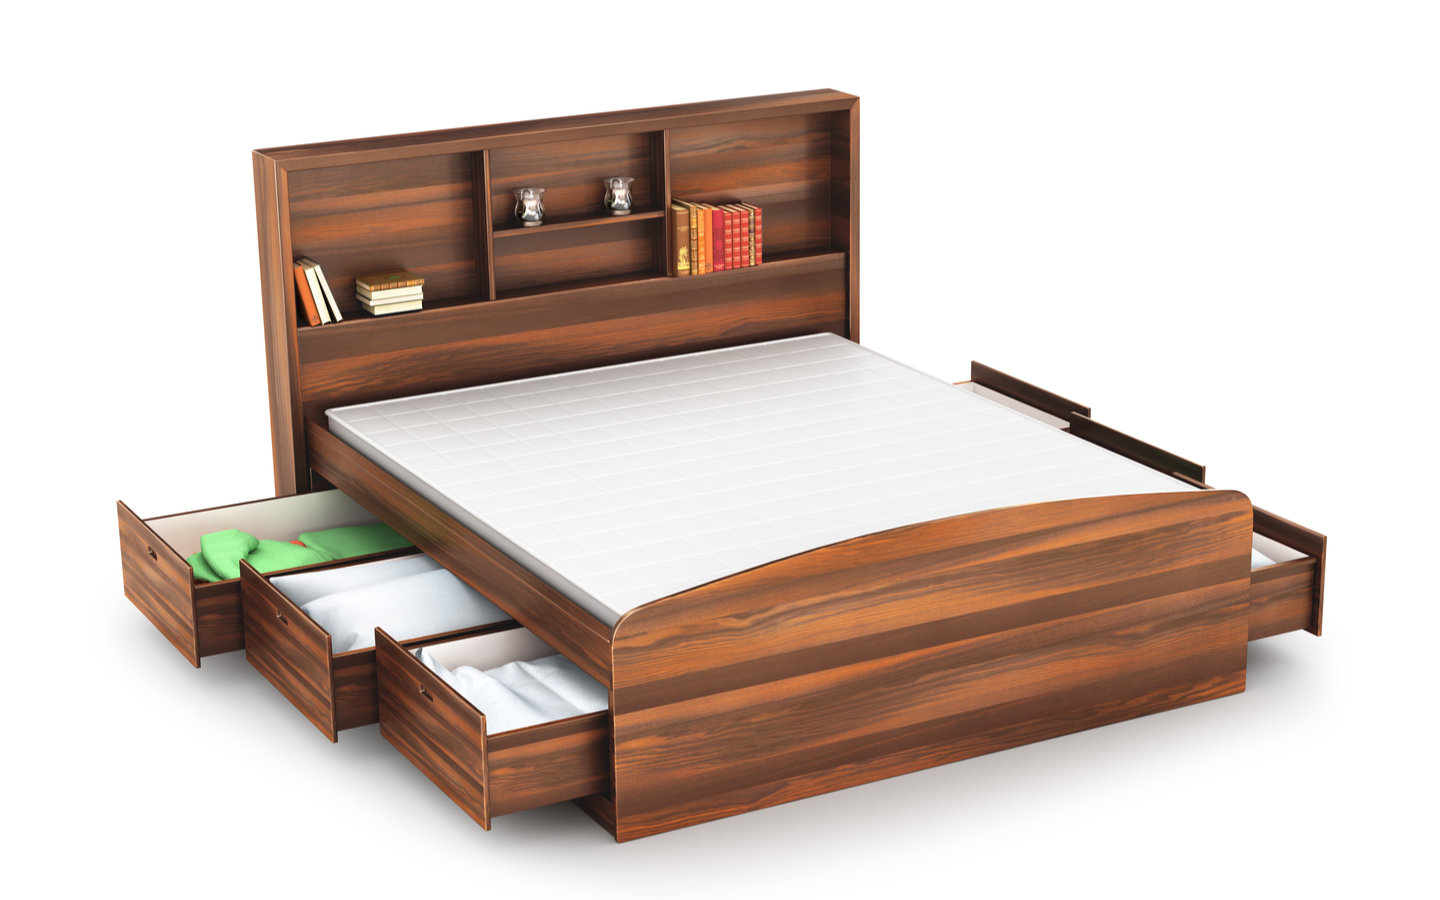 Bed with drawers as storage ideas for small spaces